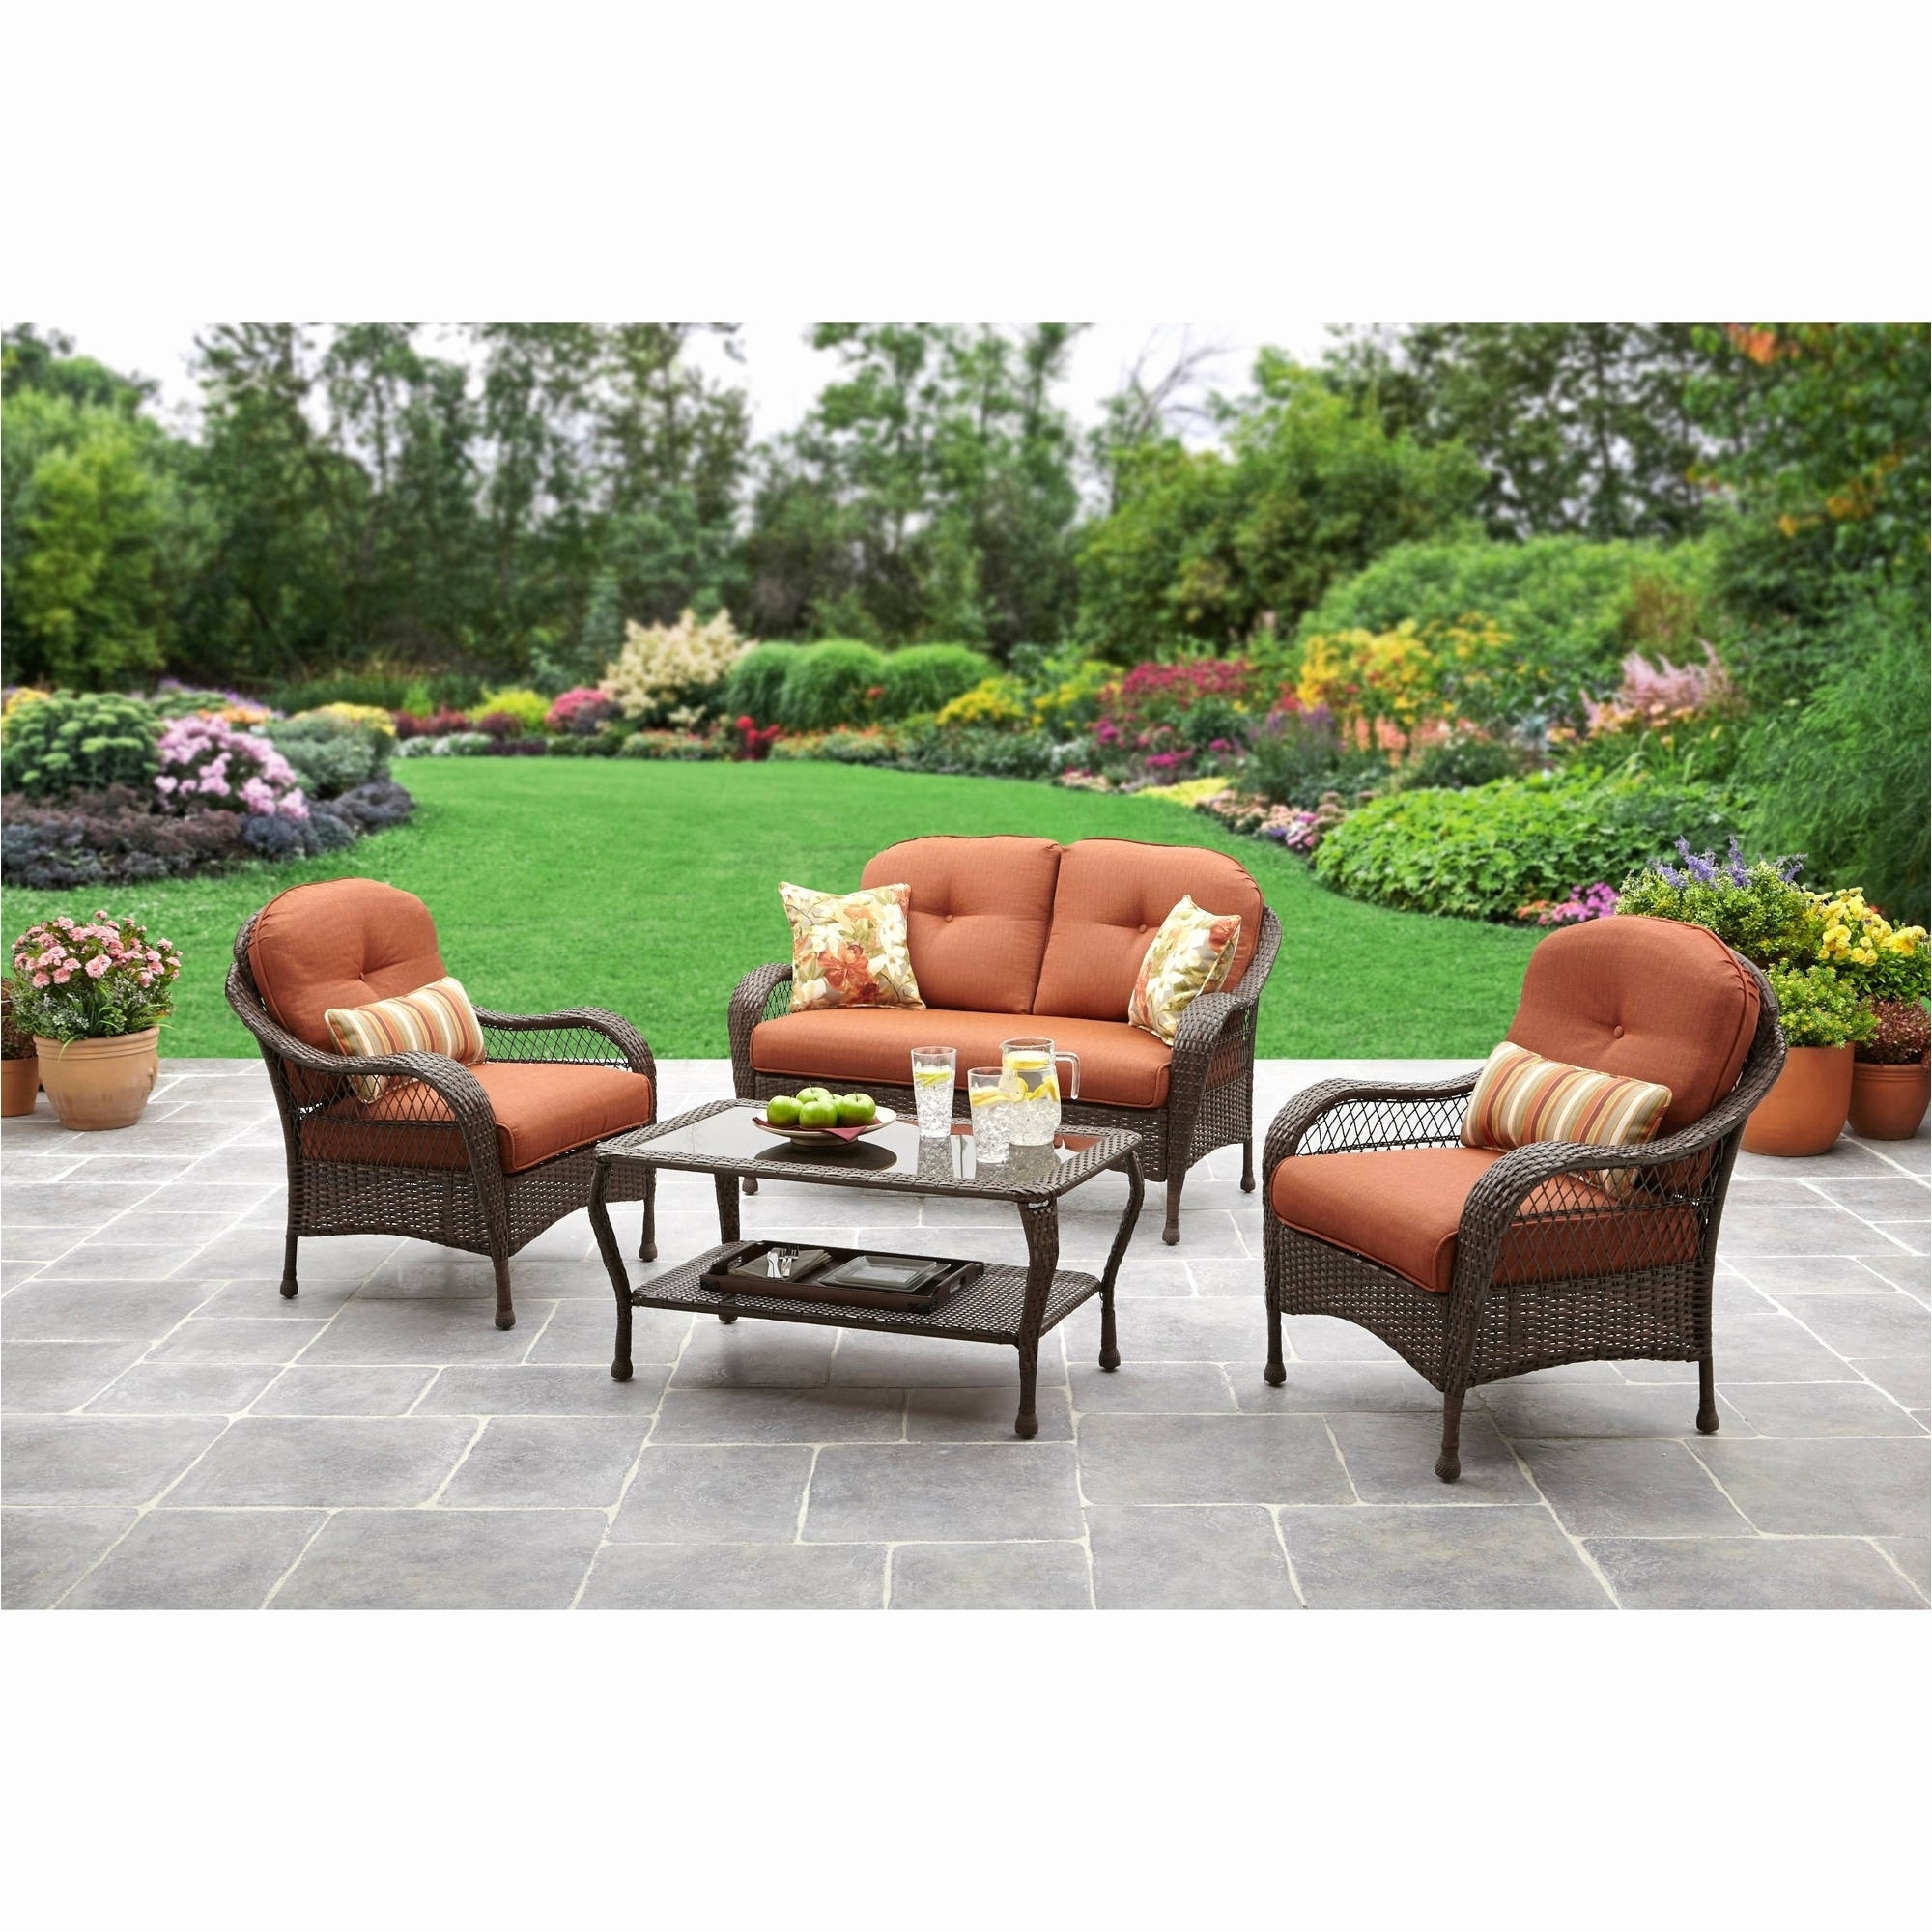 Inexpensive Patio Conversation Sets Throughout 2018 30 Amazing Patio Conversation Sets Ideas Scheme Of Cheap Patio (Gallery 19 of 20)